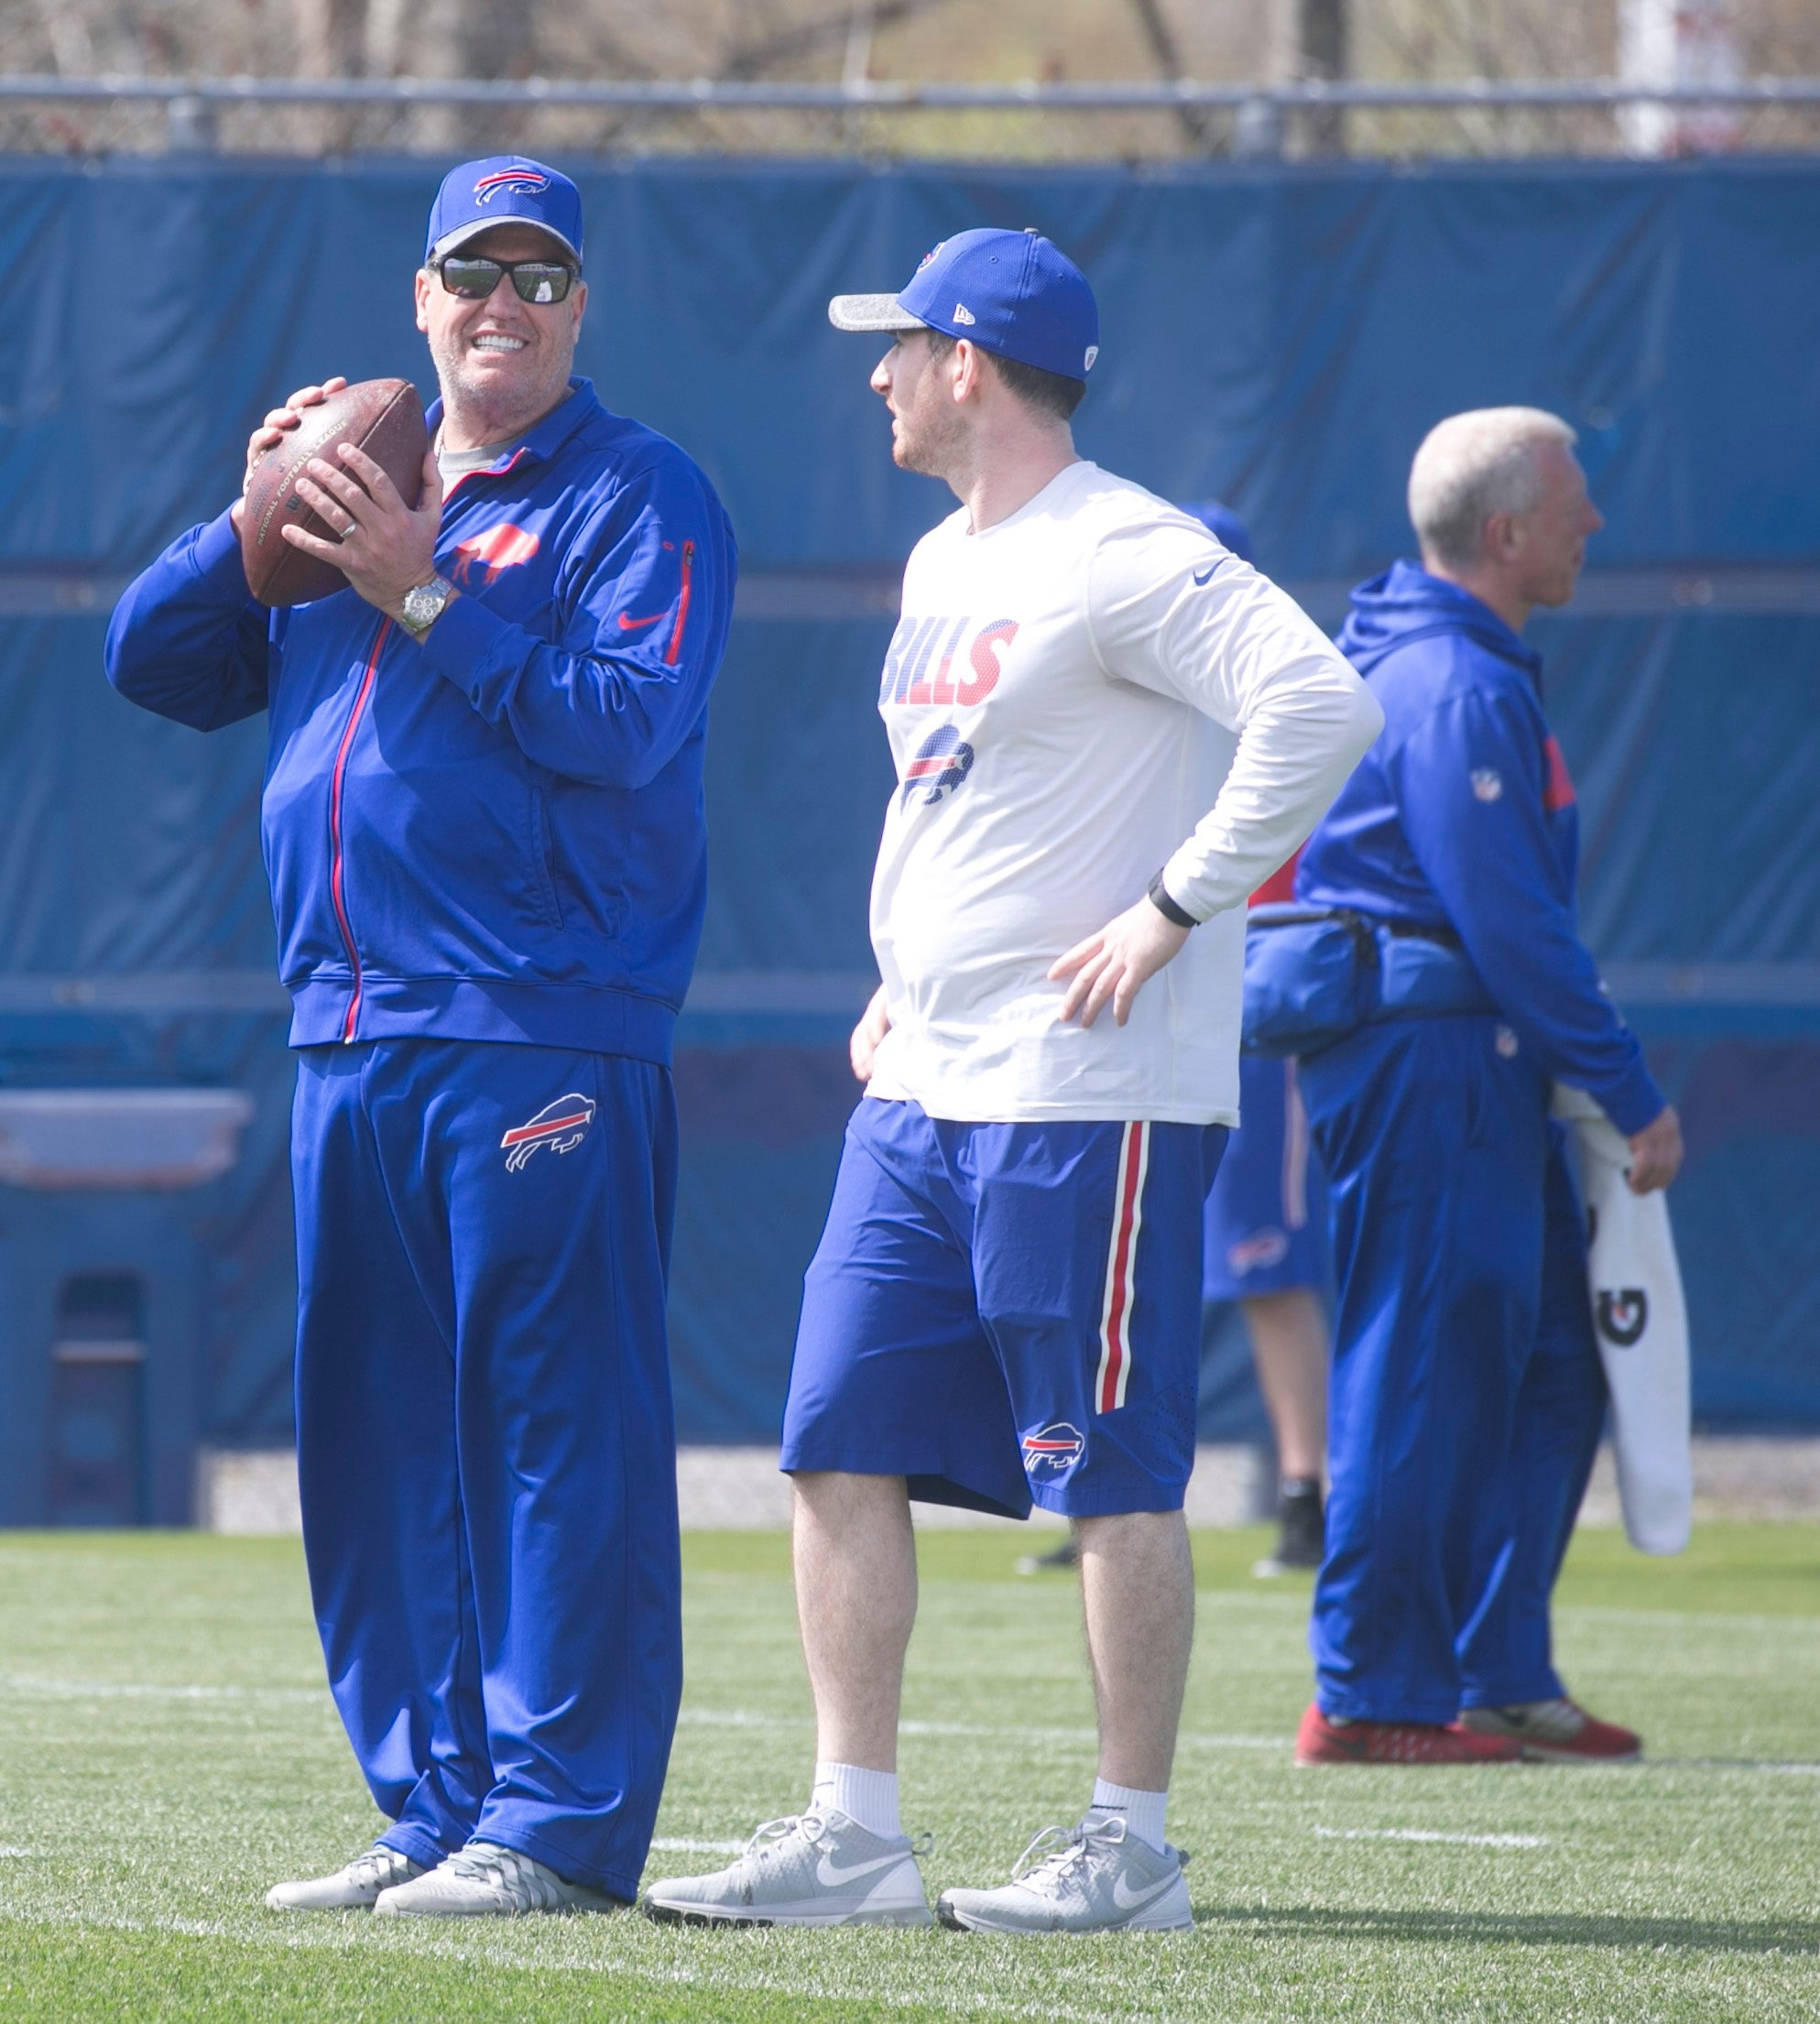 Buffalo Bills Head Coach Rex Ryan at Bills rookie camp at the grass practice field, in Orchard Park, N.Y., on Friday May 6, 2016. (John Hickey/Buffalo News)